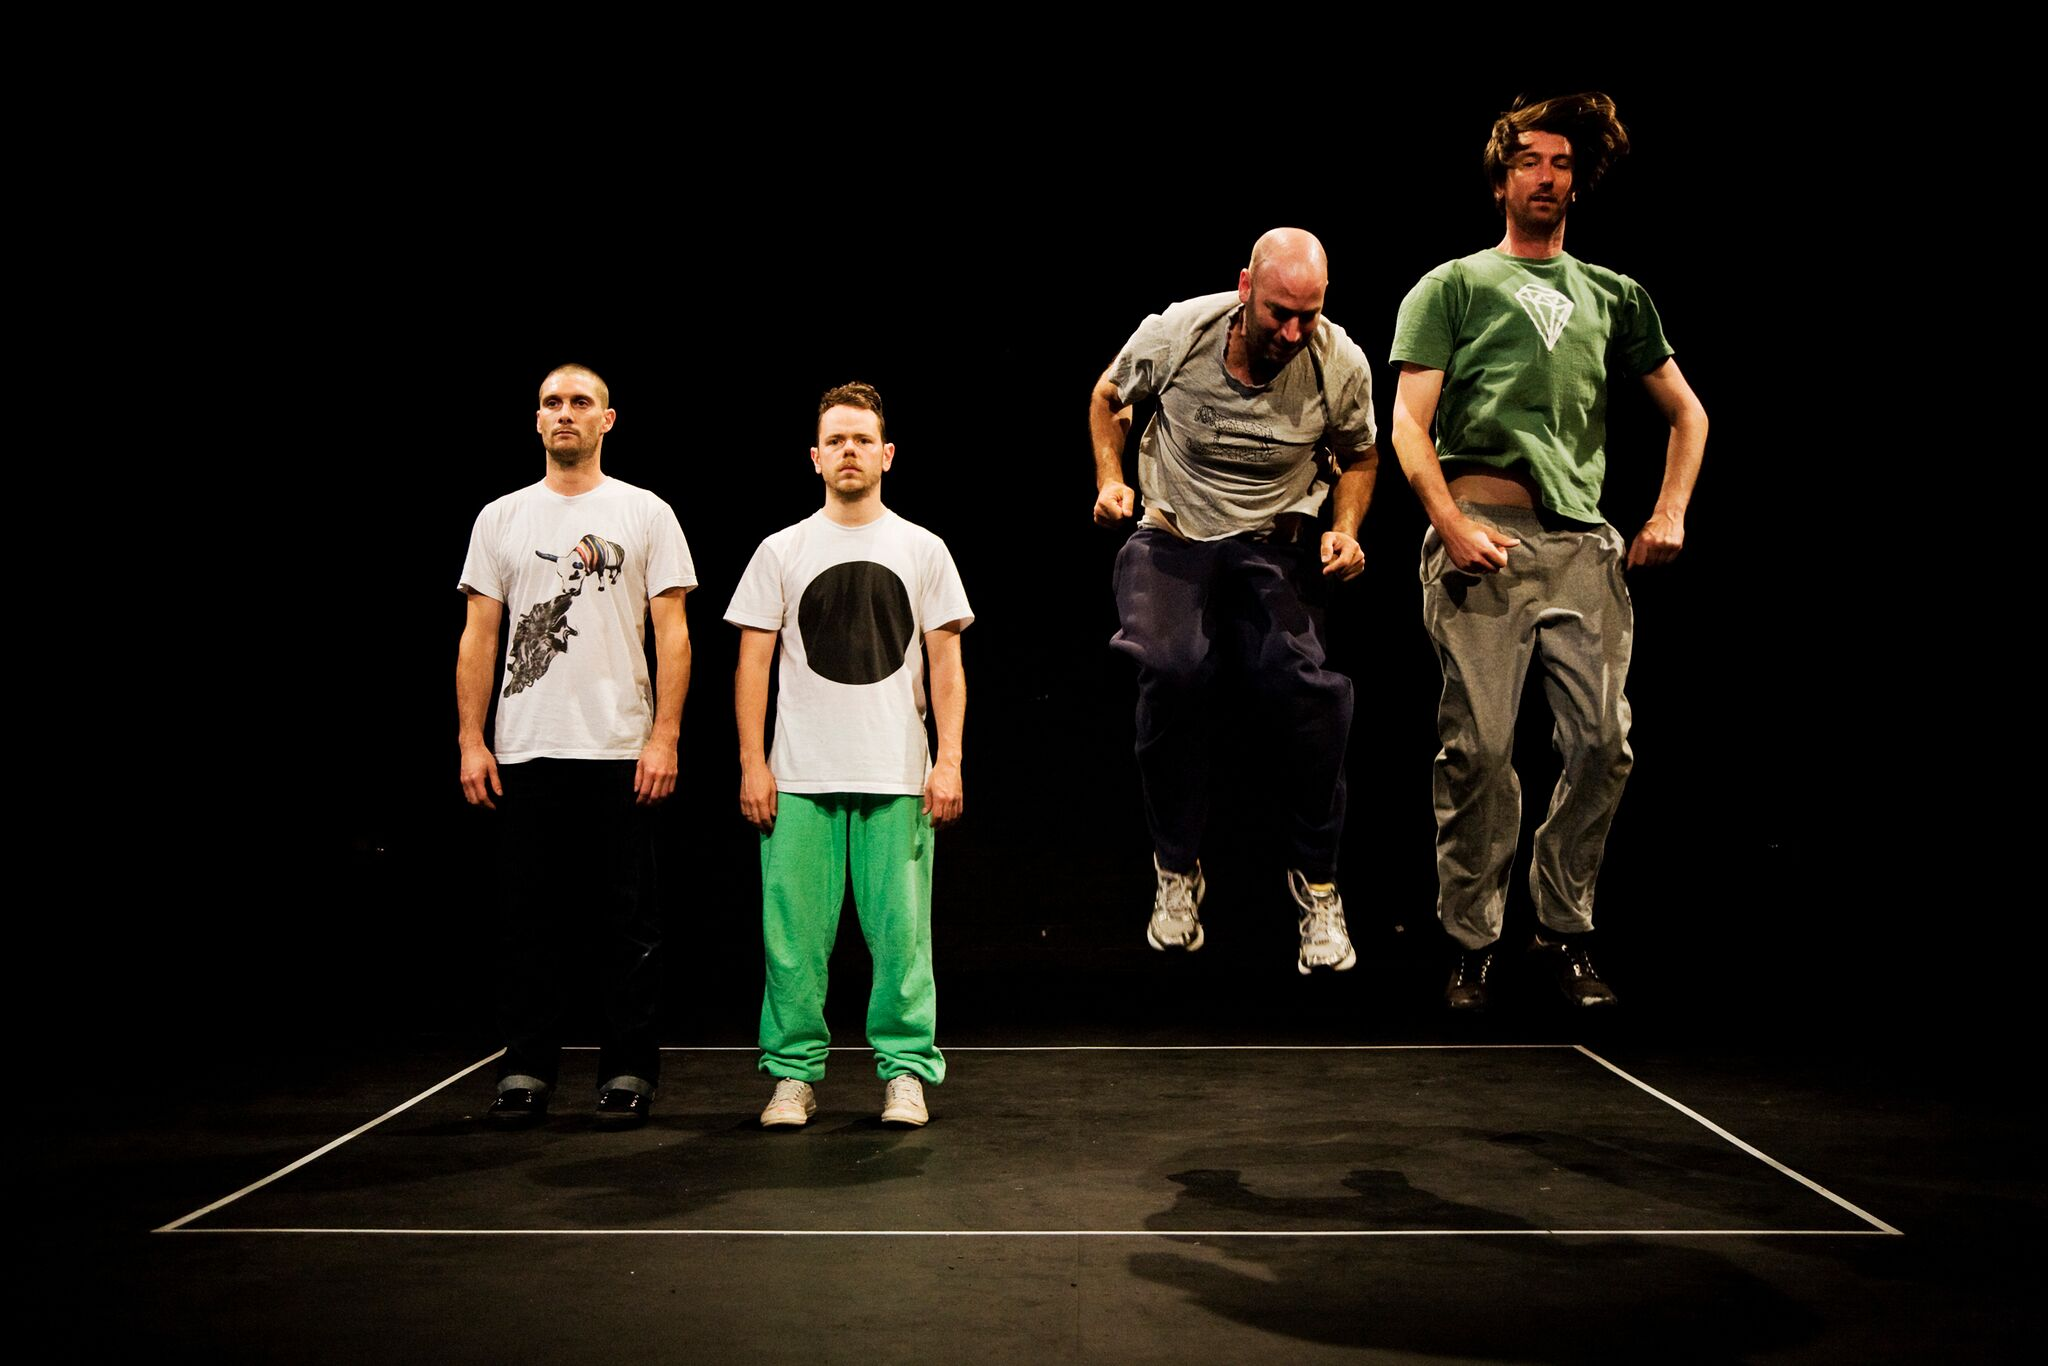 Four men dressed in casual street cloths stand in a black room. A thin white tapped border surrounds them, two of the men are mid jump.